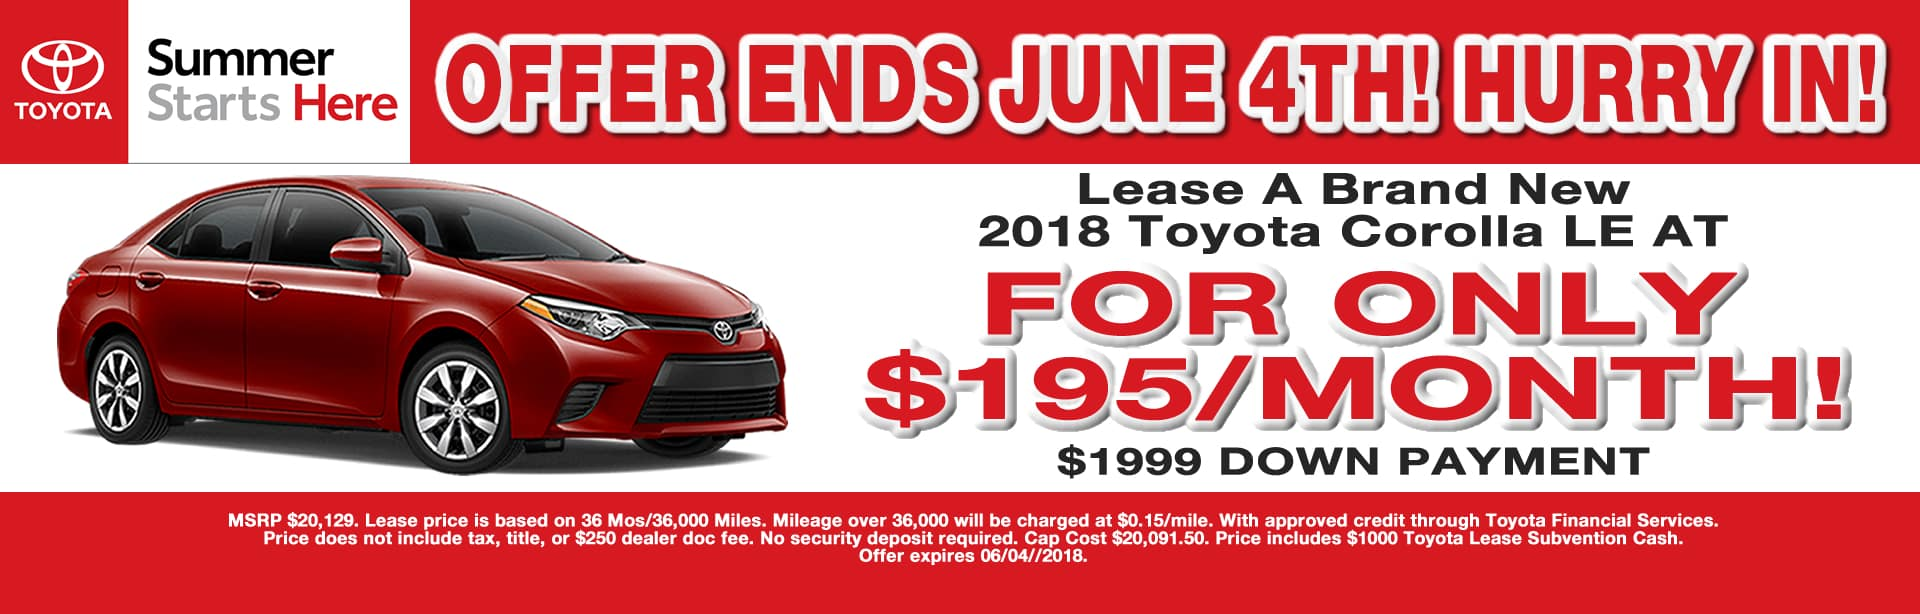 COROLLA LEASE SPECIAL CAIN TOYOTA NORTH CANTON OHIO MAY 2018